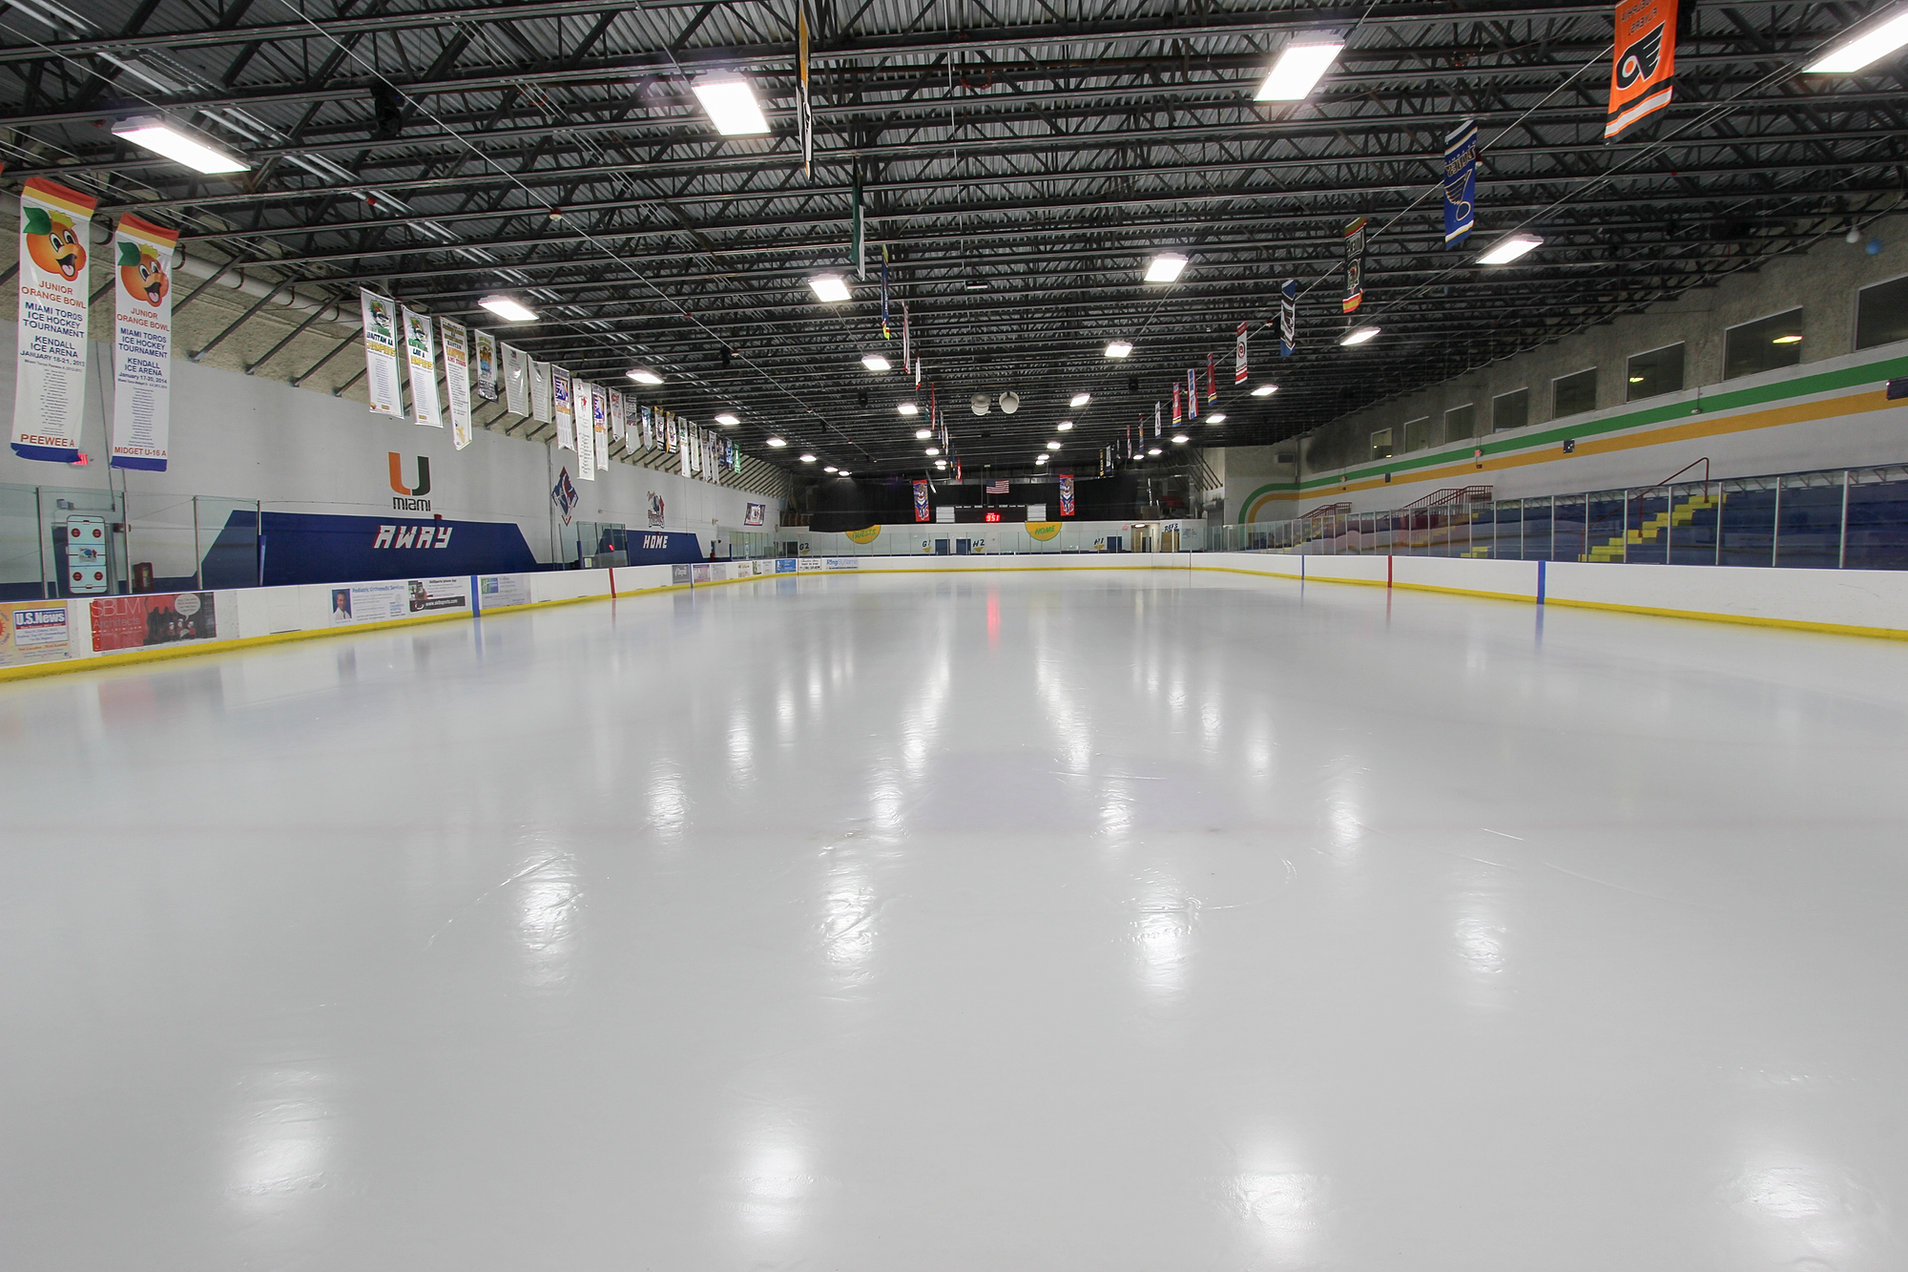 Roller skating kendall - Welcome To Kendall Ice Arena